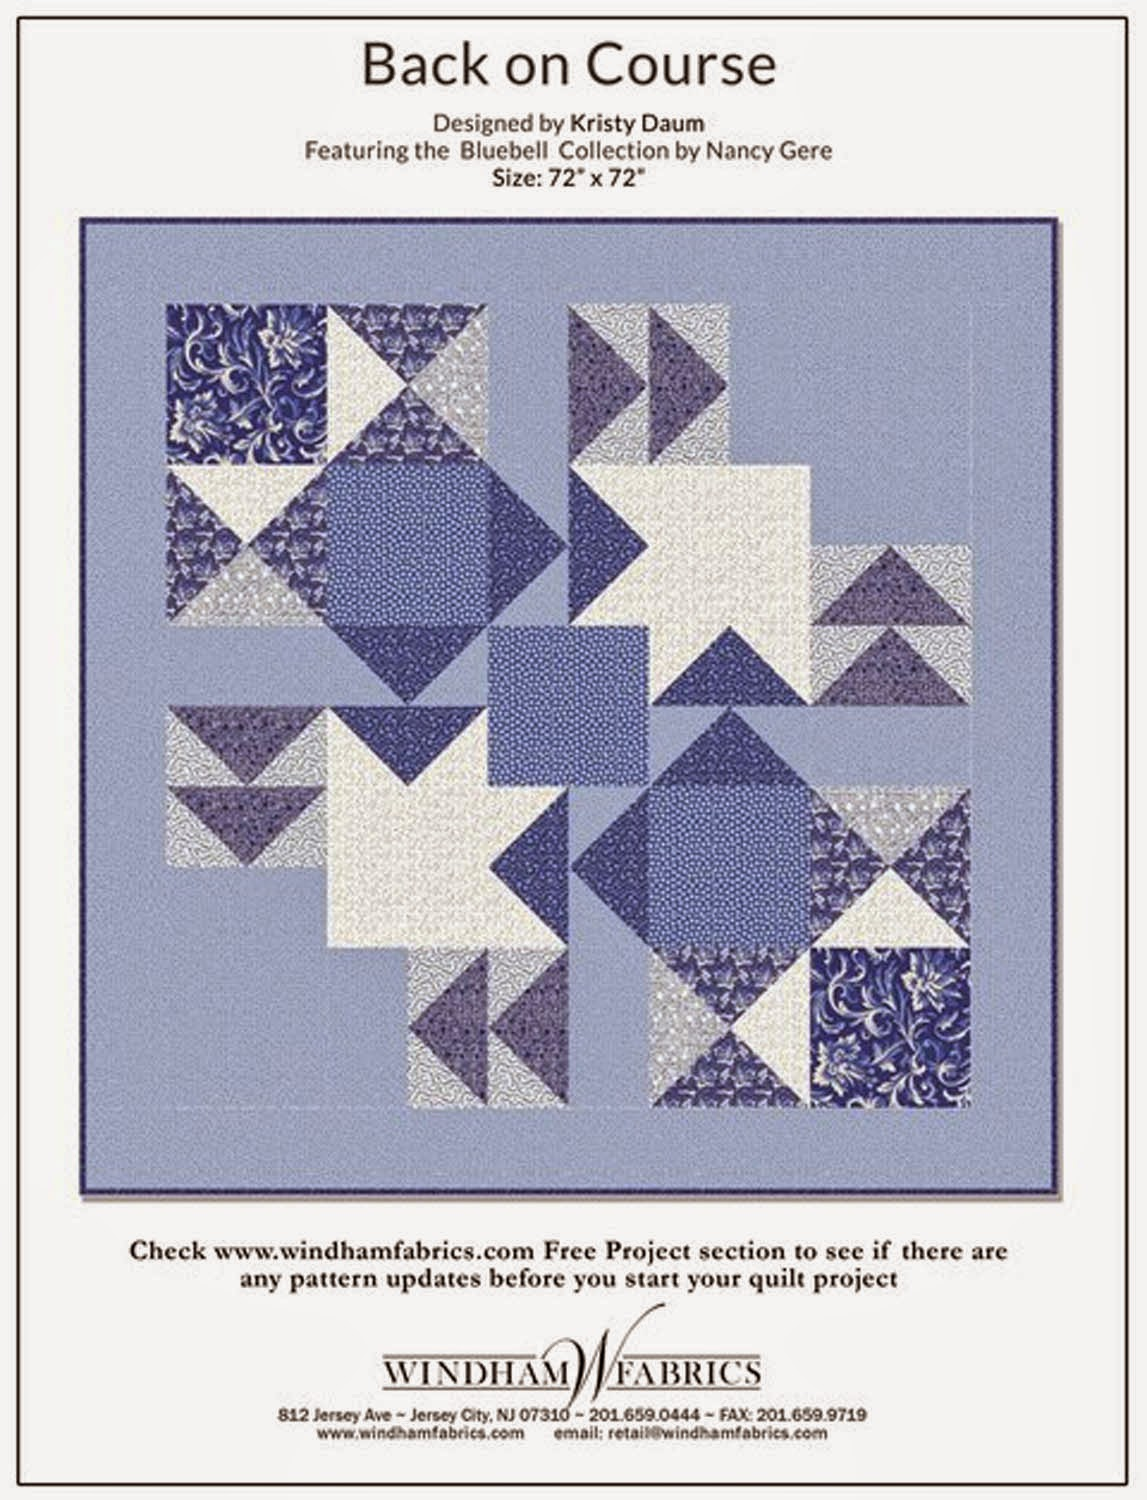 BACK ON COURSE Quilt Pattern // Kristy Daum for Windham Fabrics